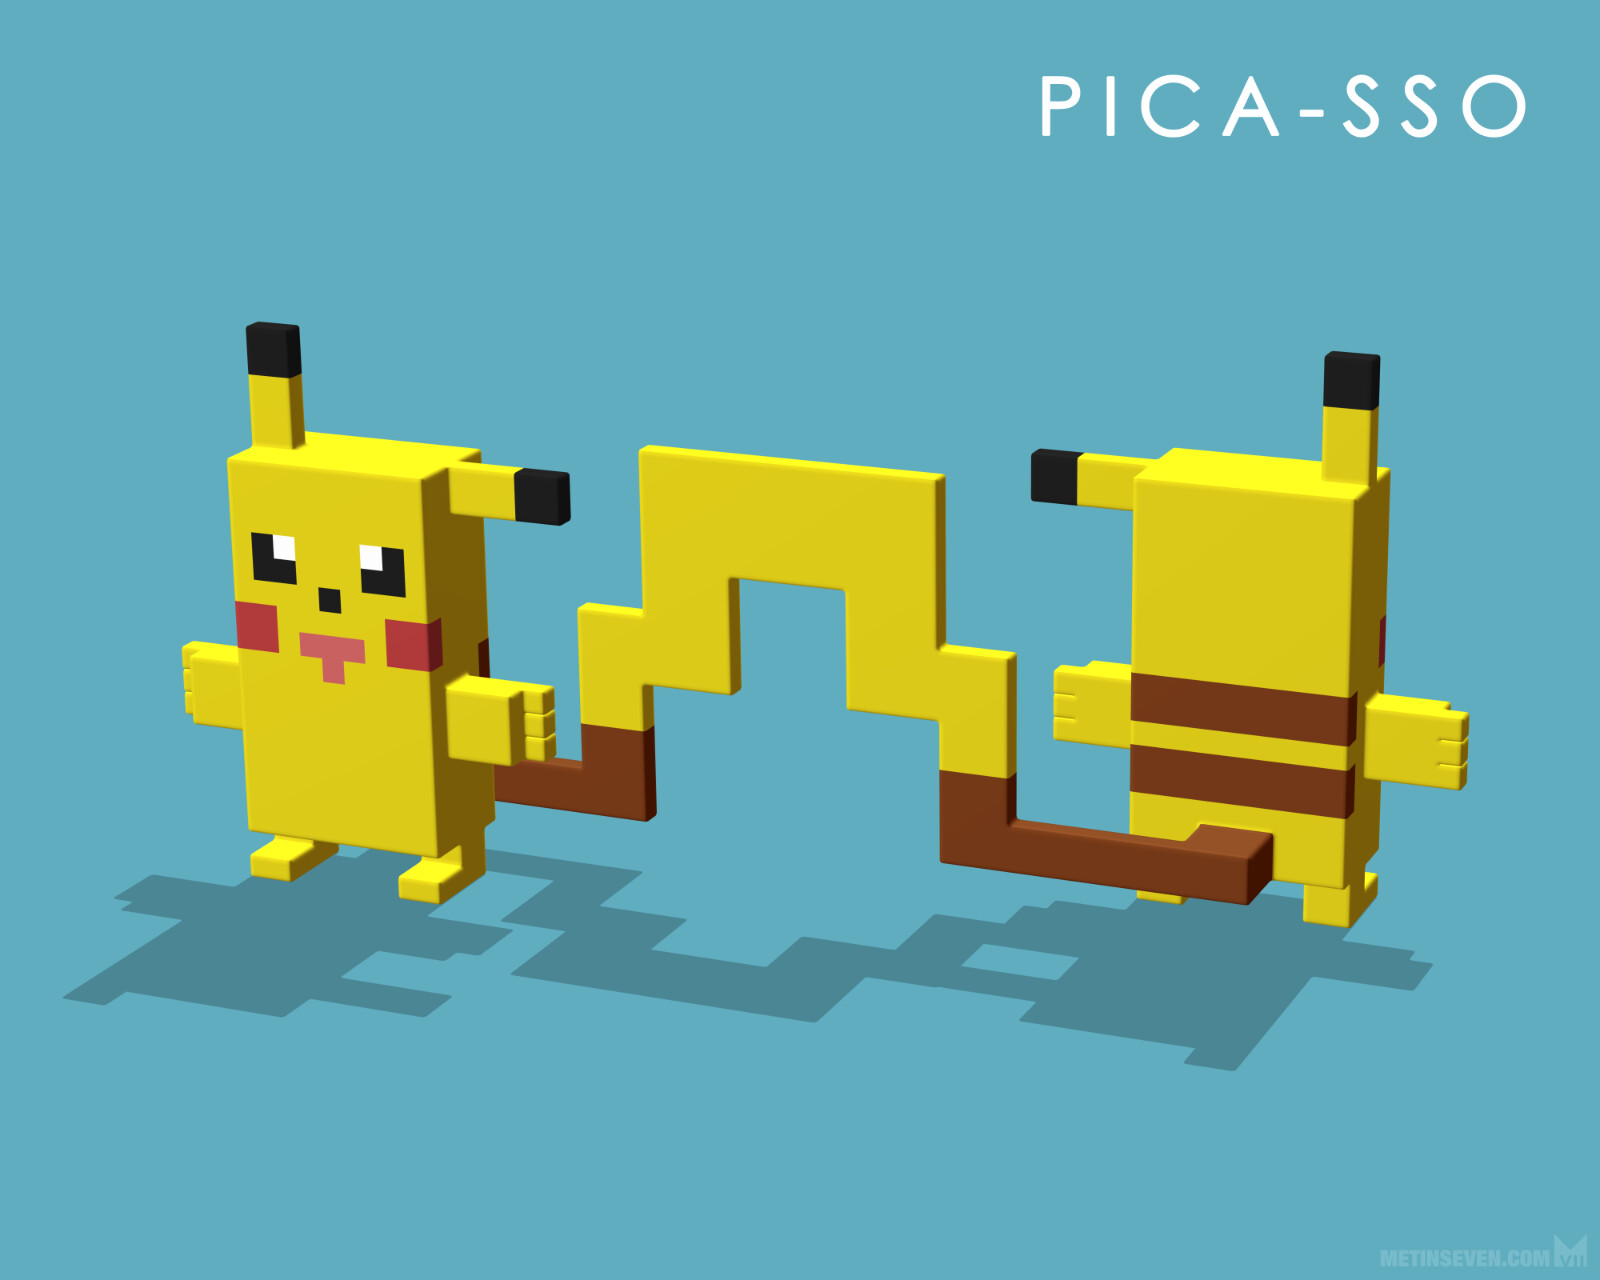 Pica-sso, or what would happen if Picasso would paint a Picachu from Pokemon 😉